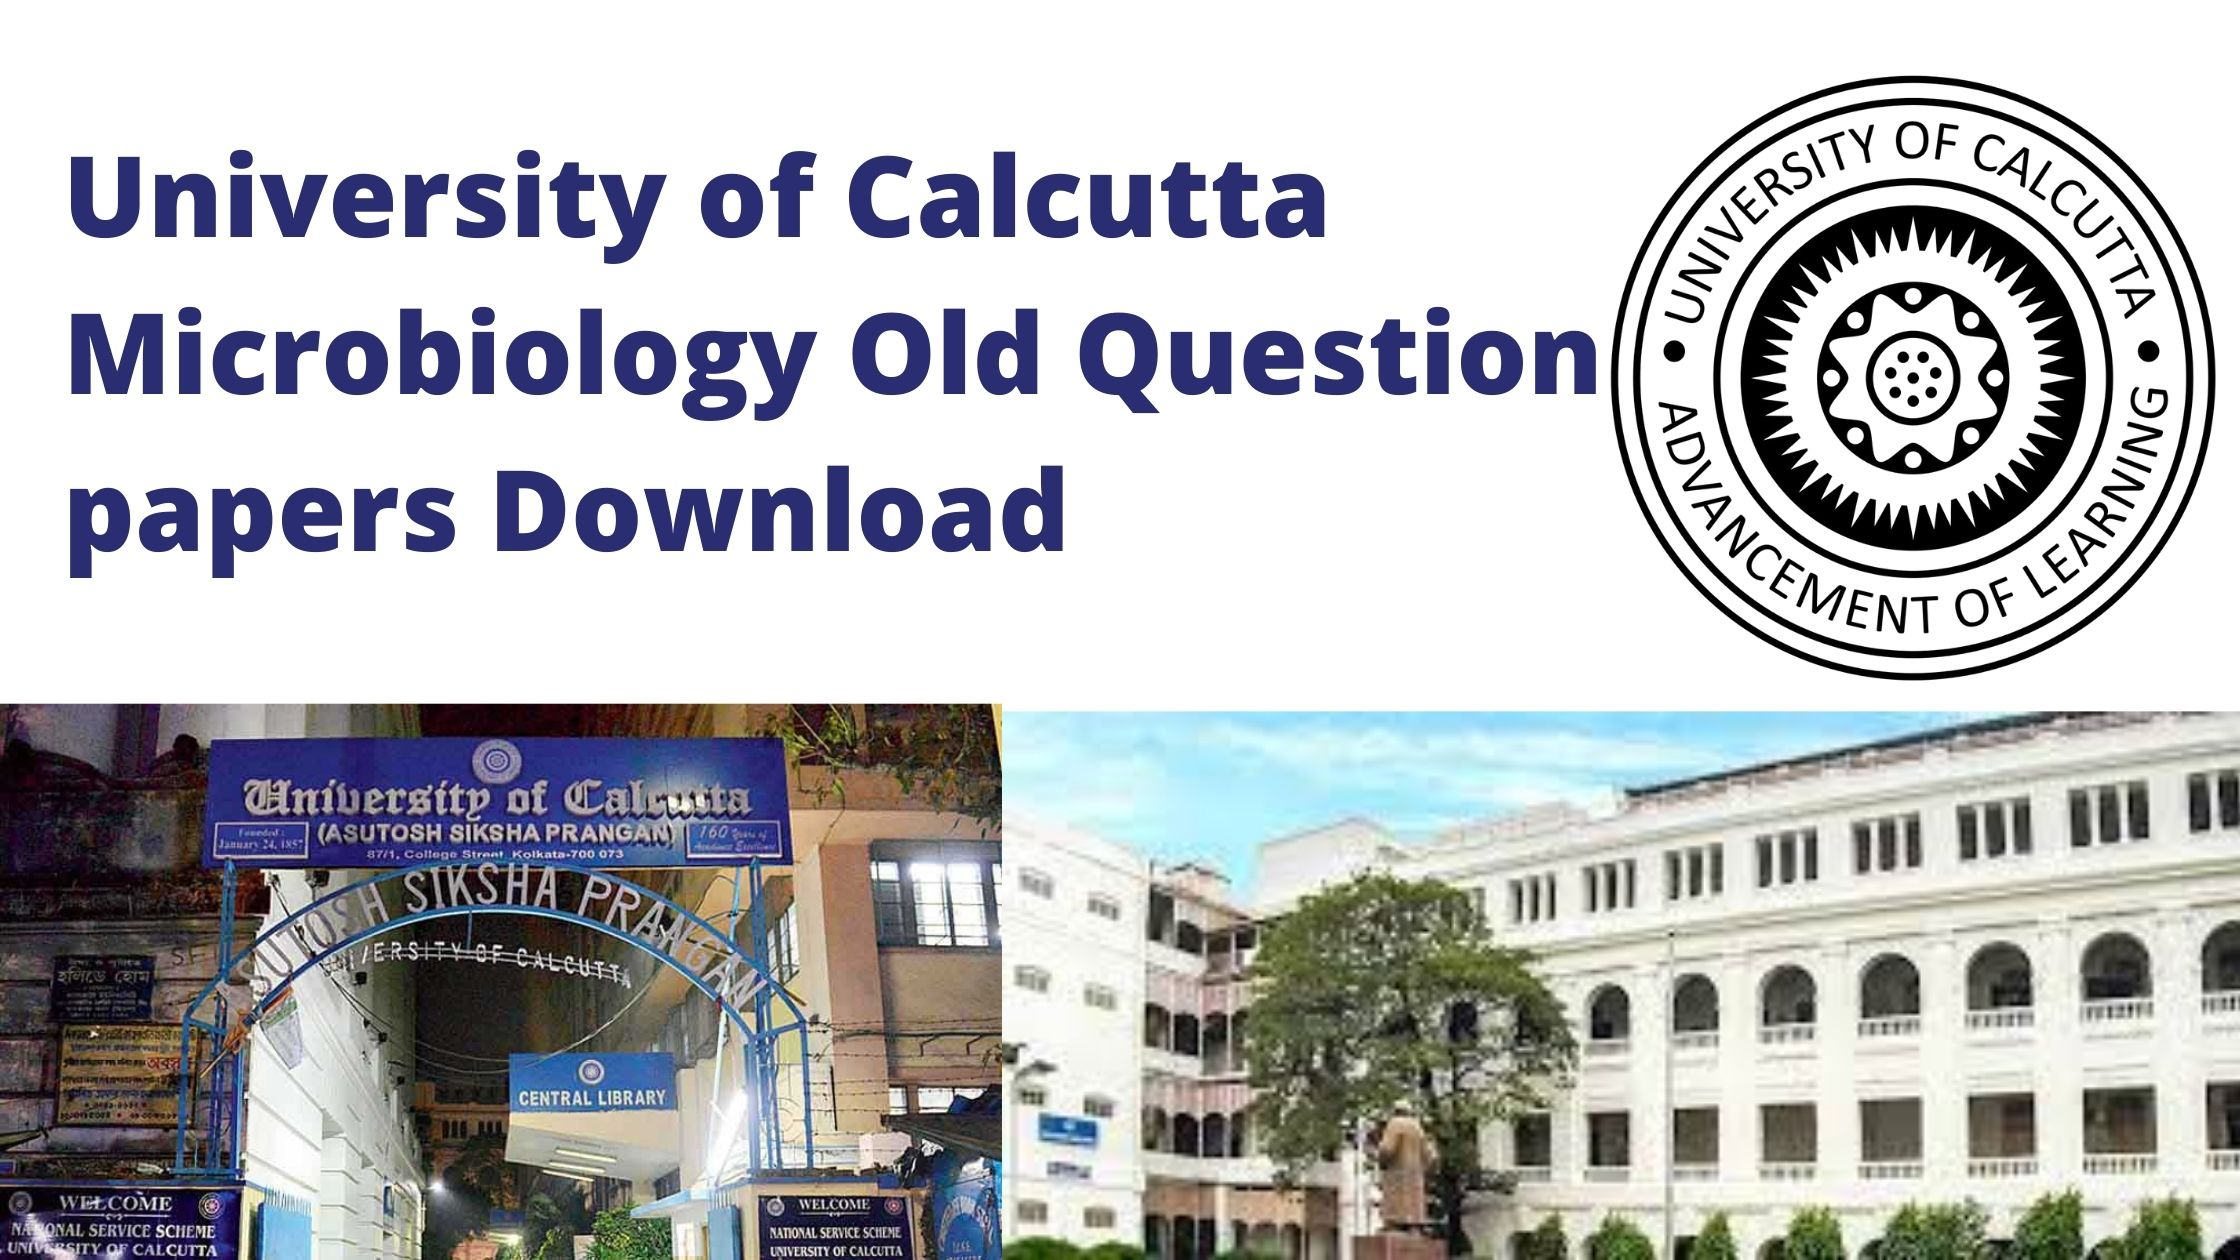 University of Calcutta MSc Microbiology Question Papers of 2020 Download